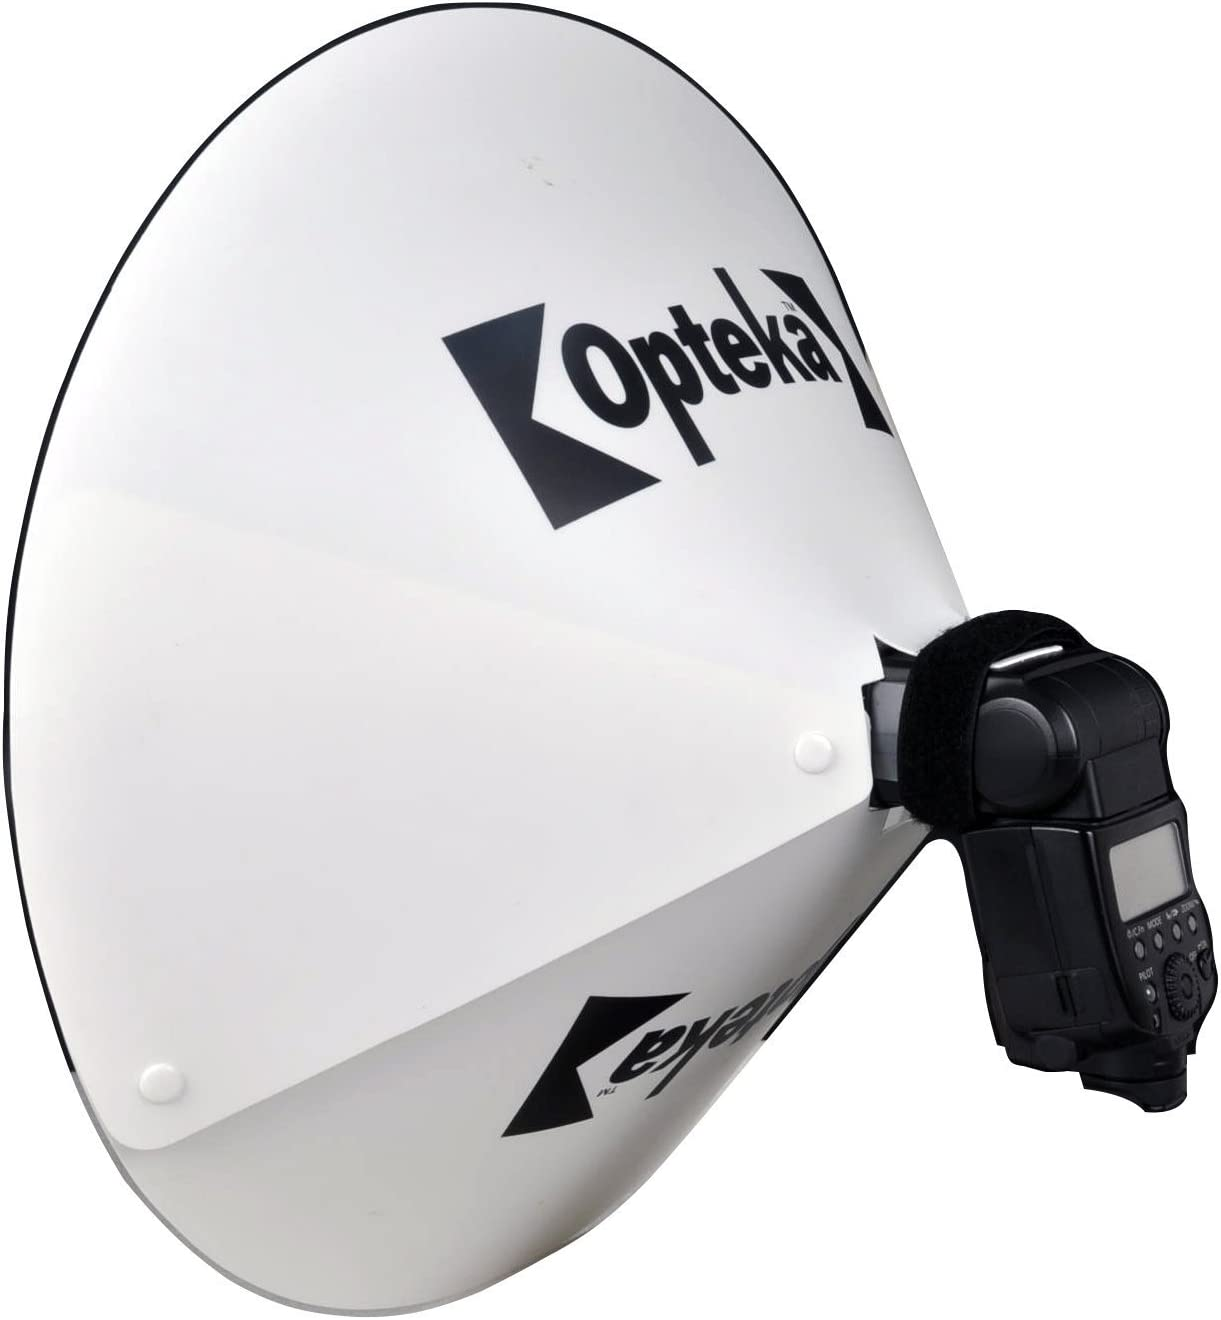 Max 85% OFF Opteka BD-10 Studio 23-Inch Clearance SALE Limited time DSLR Digital Flash Dish Camera Dome